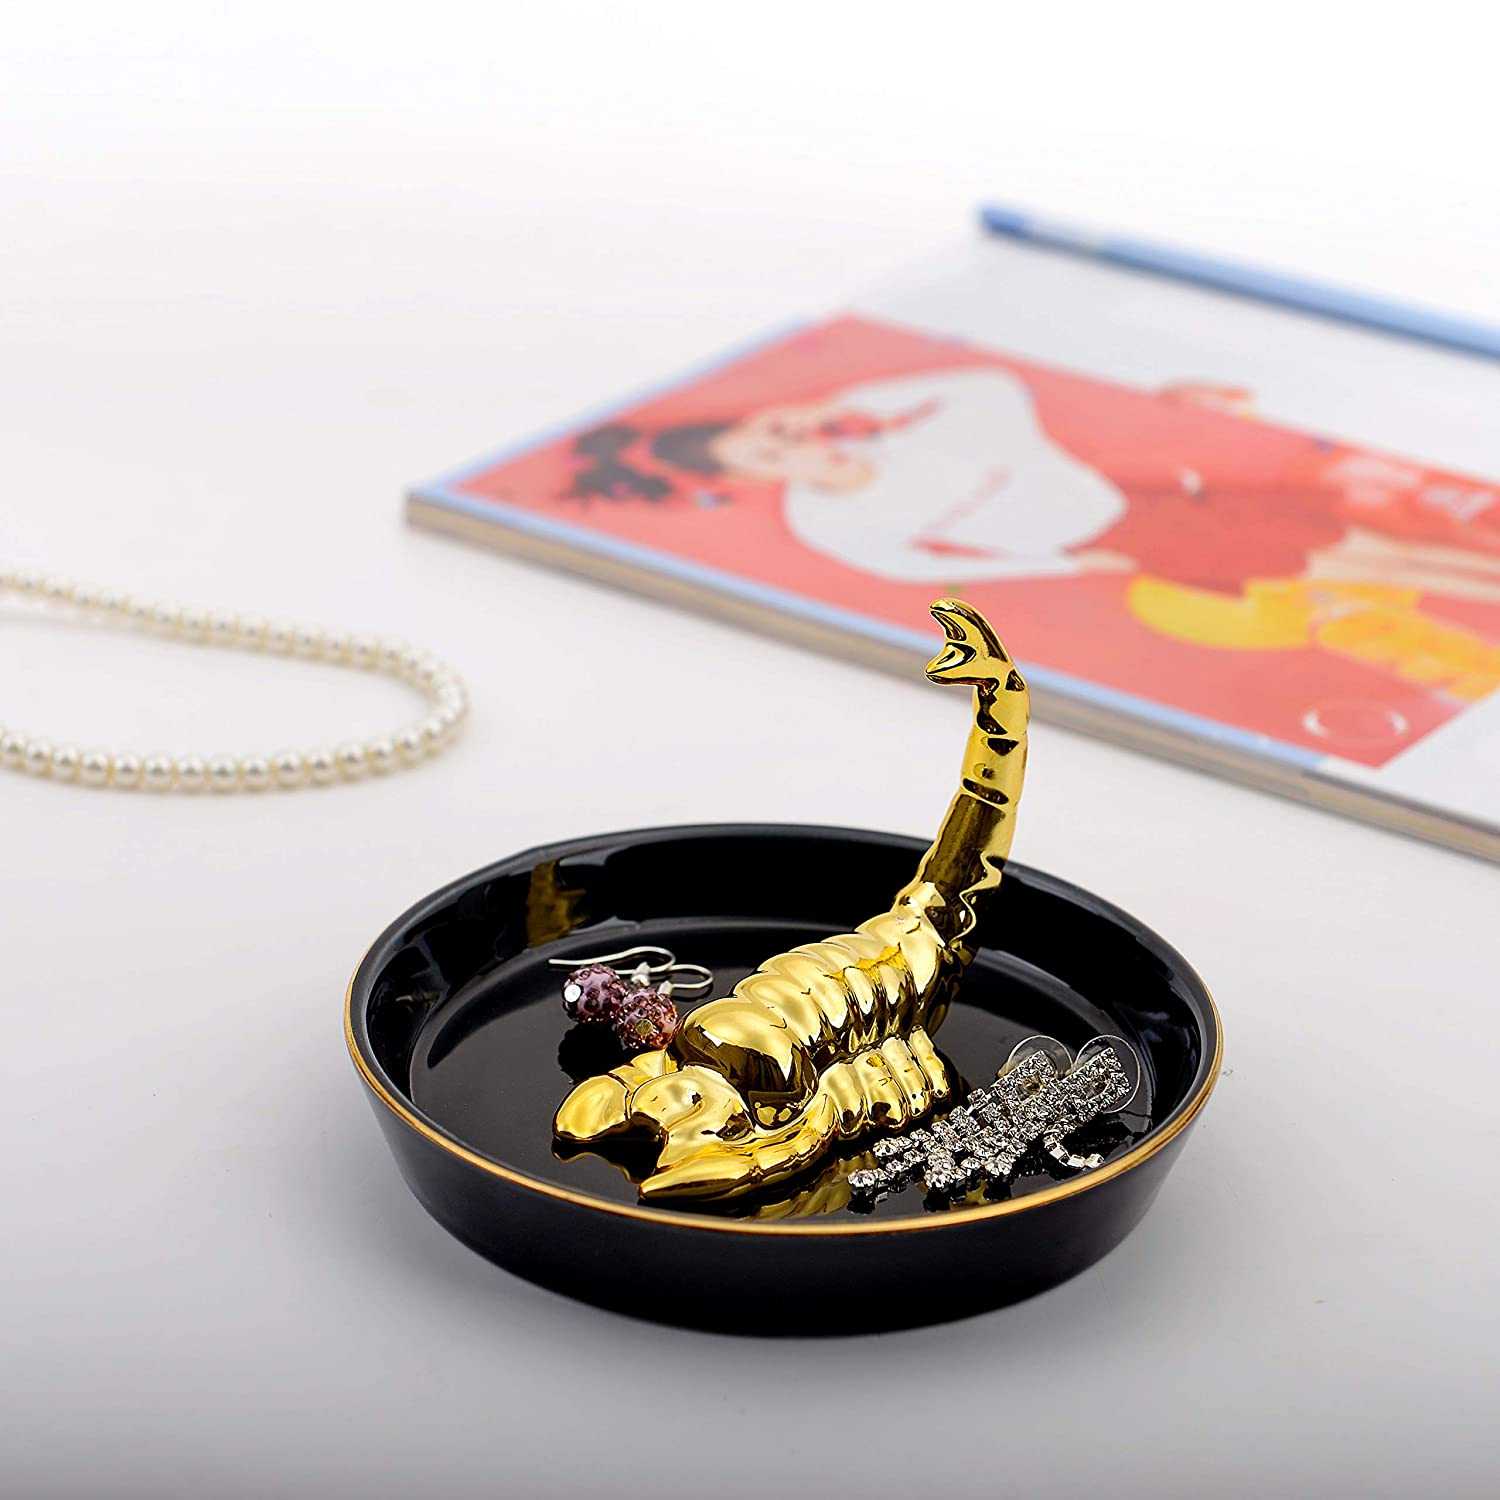 YPDINGDING Constellation Gold Scorpio Jewelry Tray Ring Holder Decor Dish Organizer Ring Display Earrings Necklace Bracelet